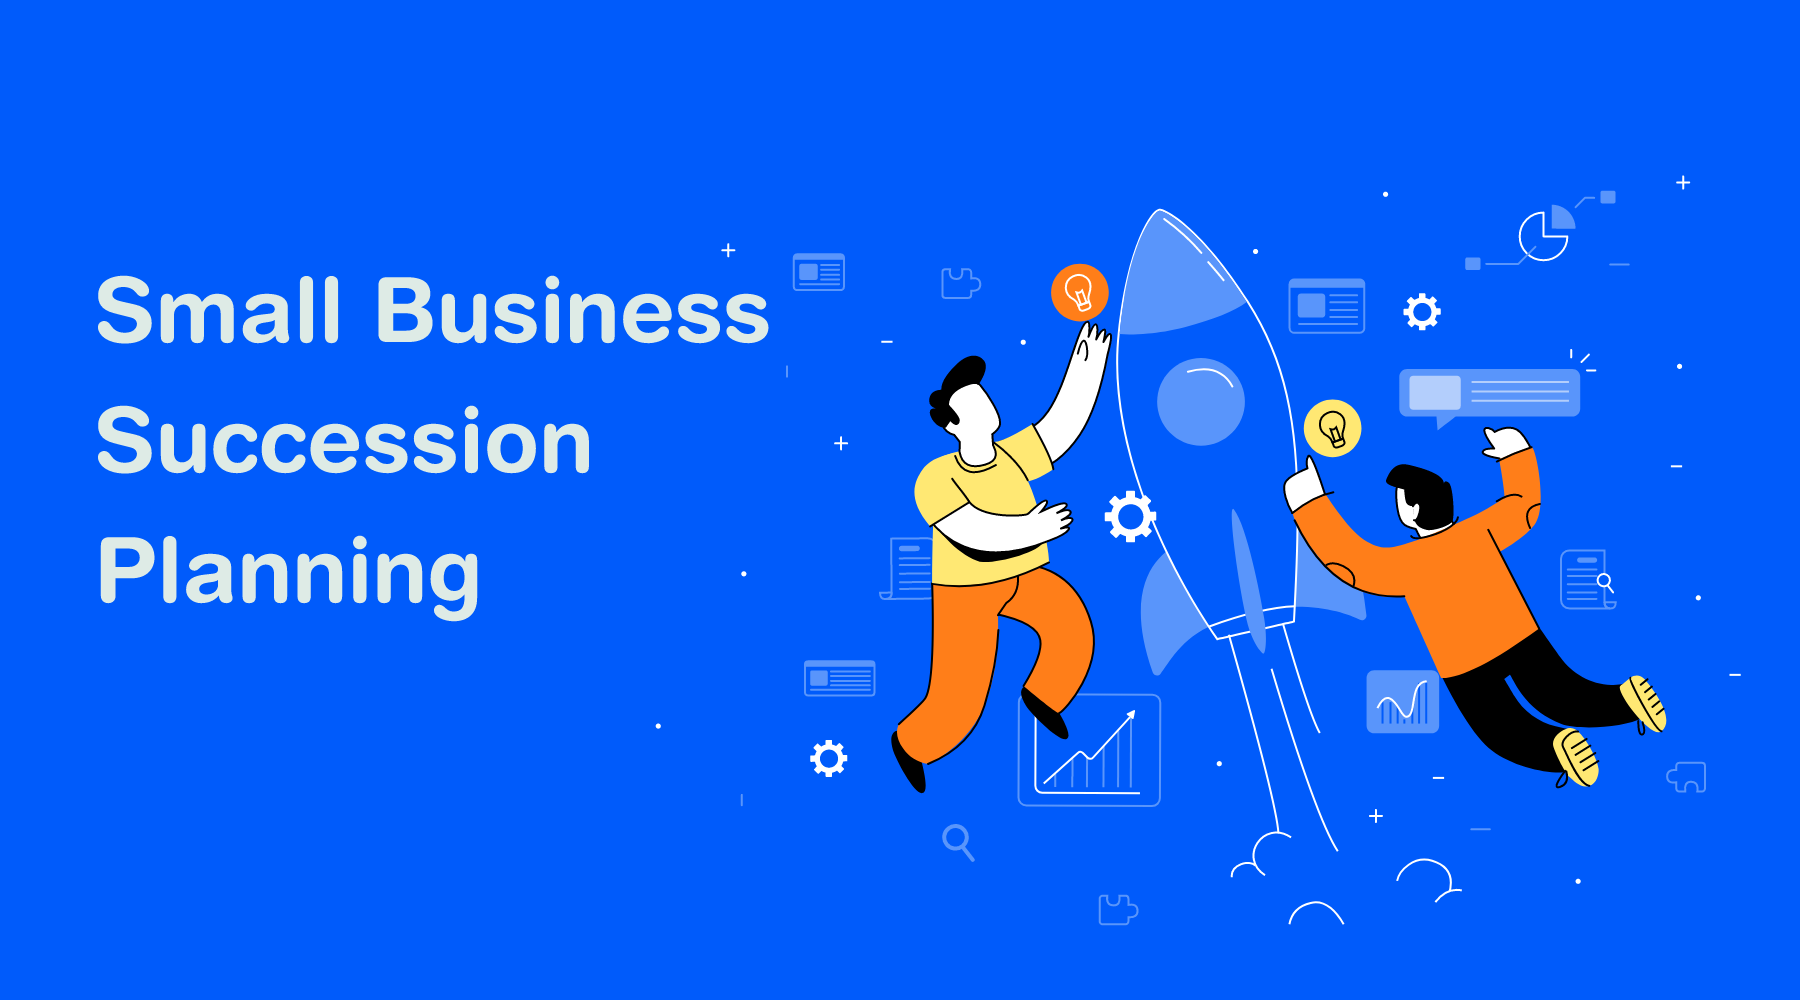 Small Business Succession Planning guide